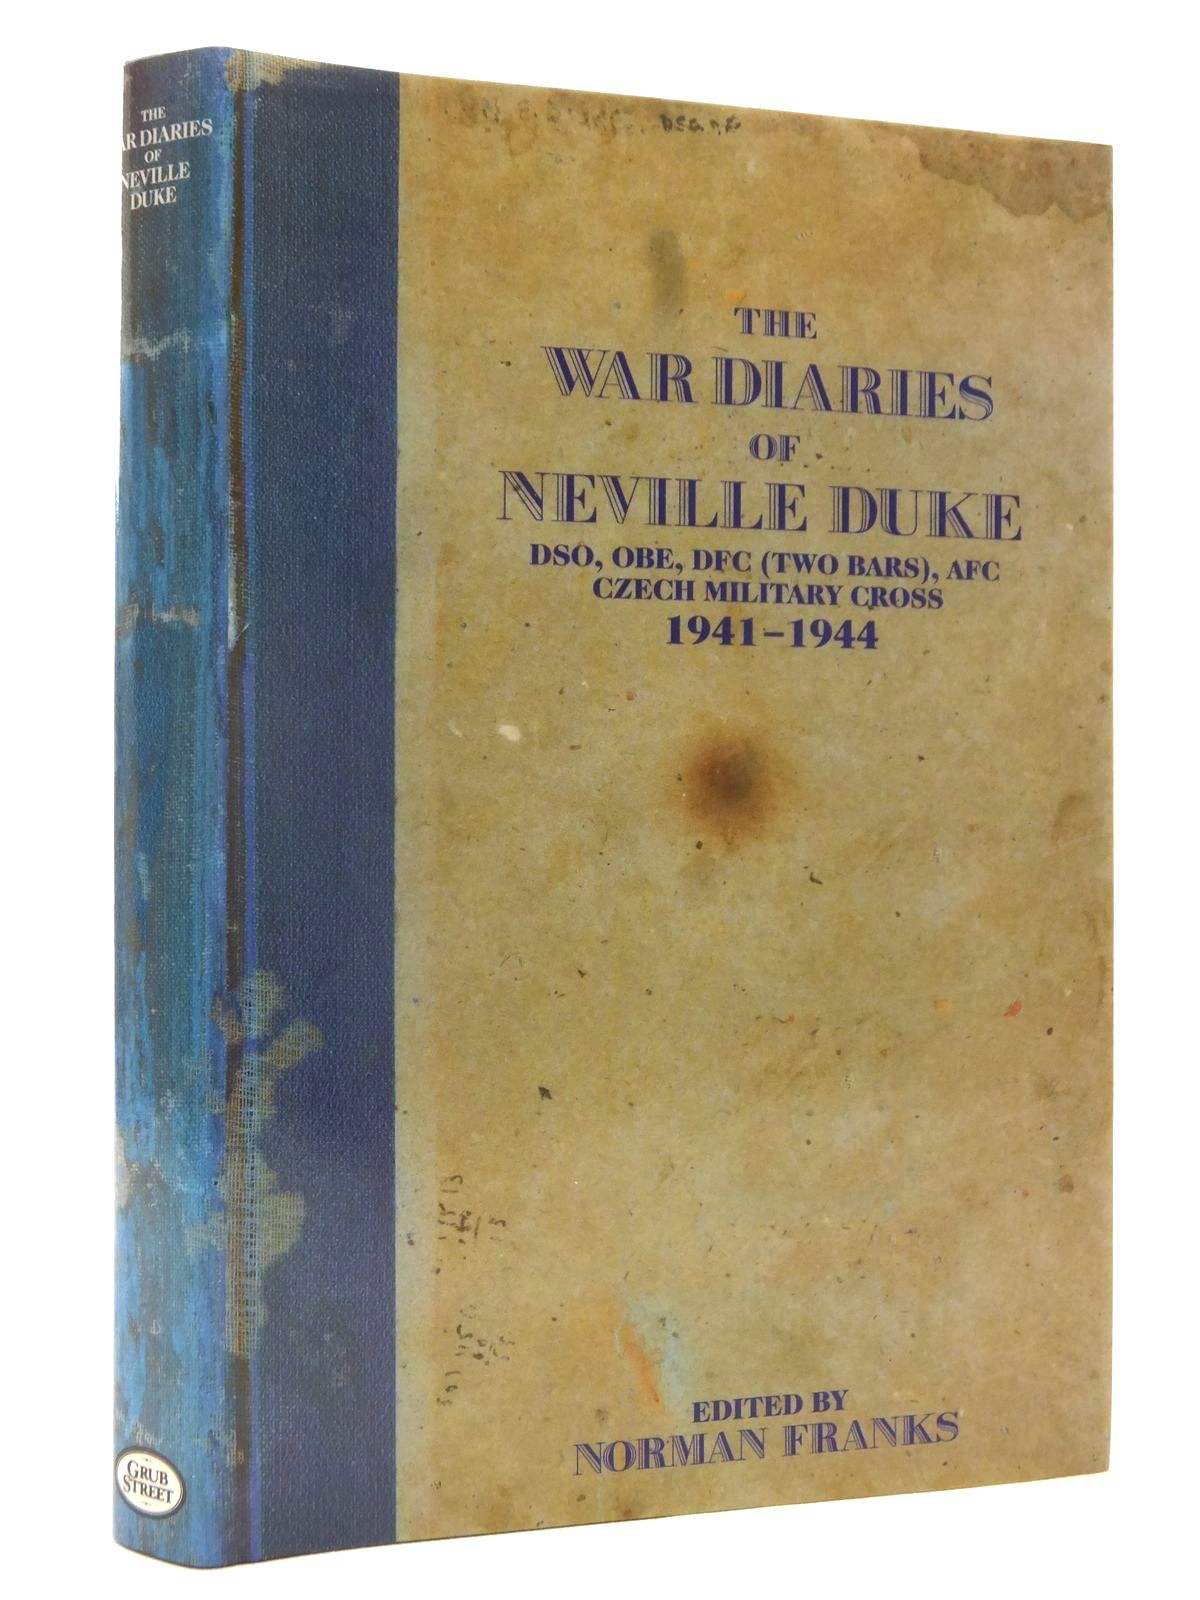 Photo of THE WAR DIARIES OF NEVILLE DUKE written by Duke, Neville Franks, Norman published by Grub Street (STOCK CODE: 1610083)  for sale by Stella & Rose's Books